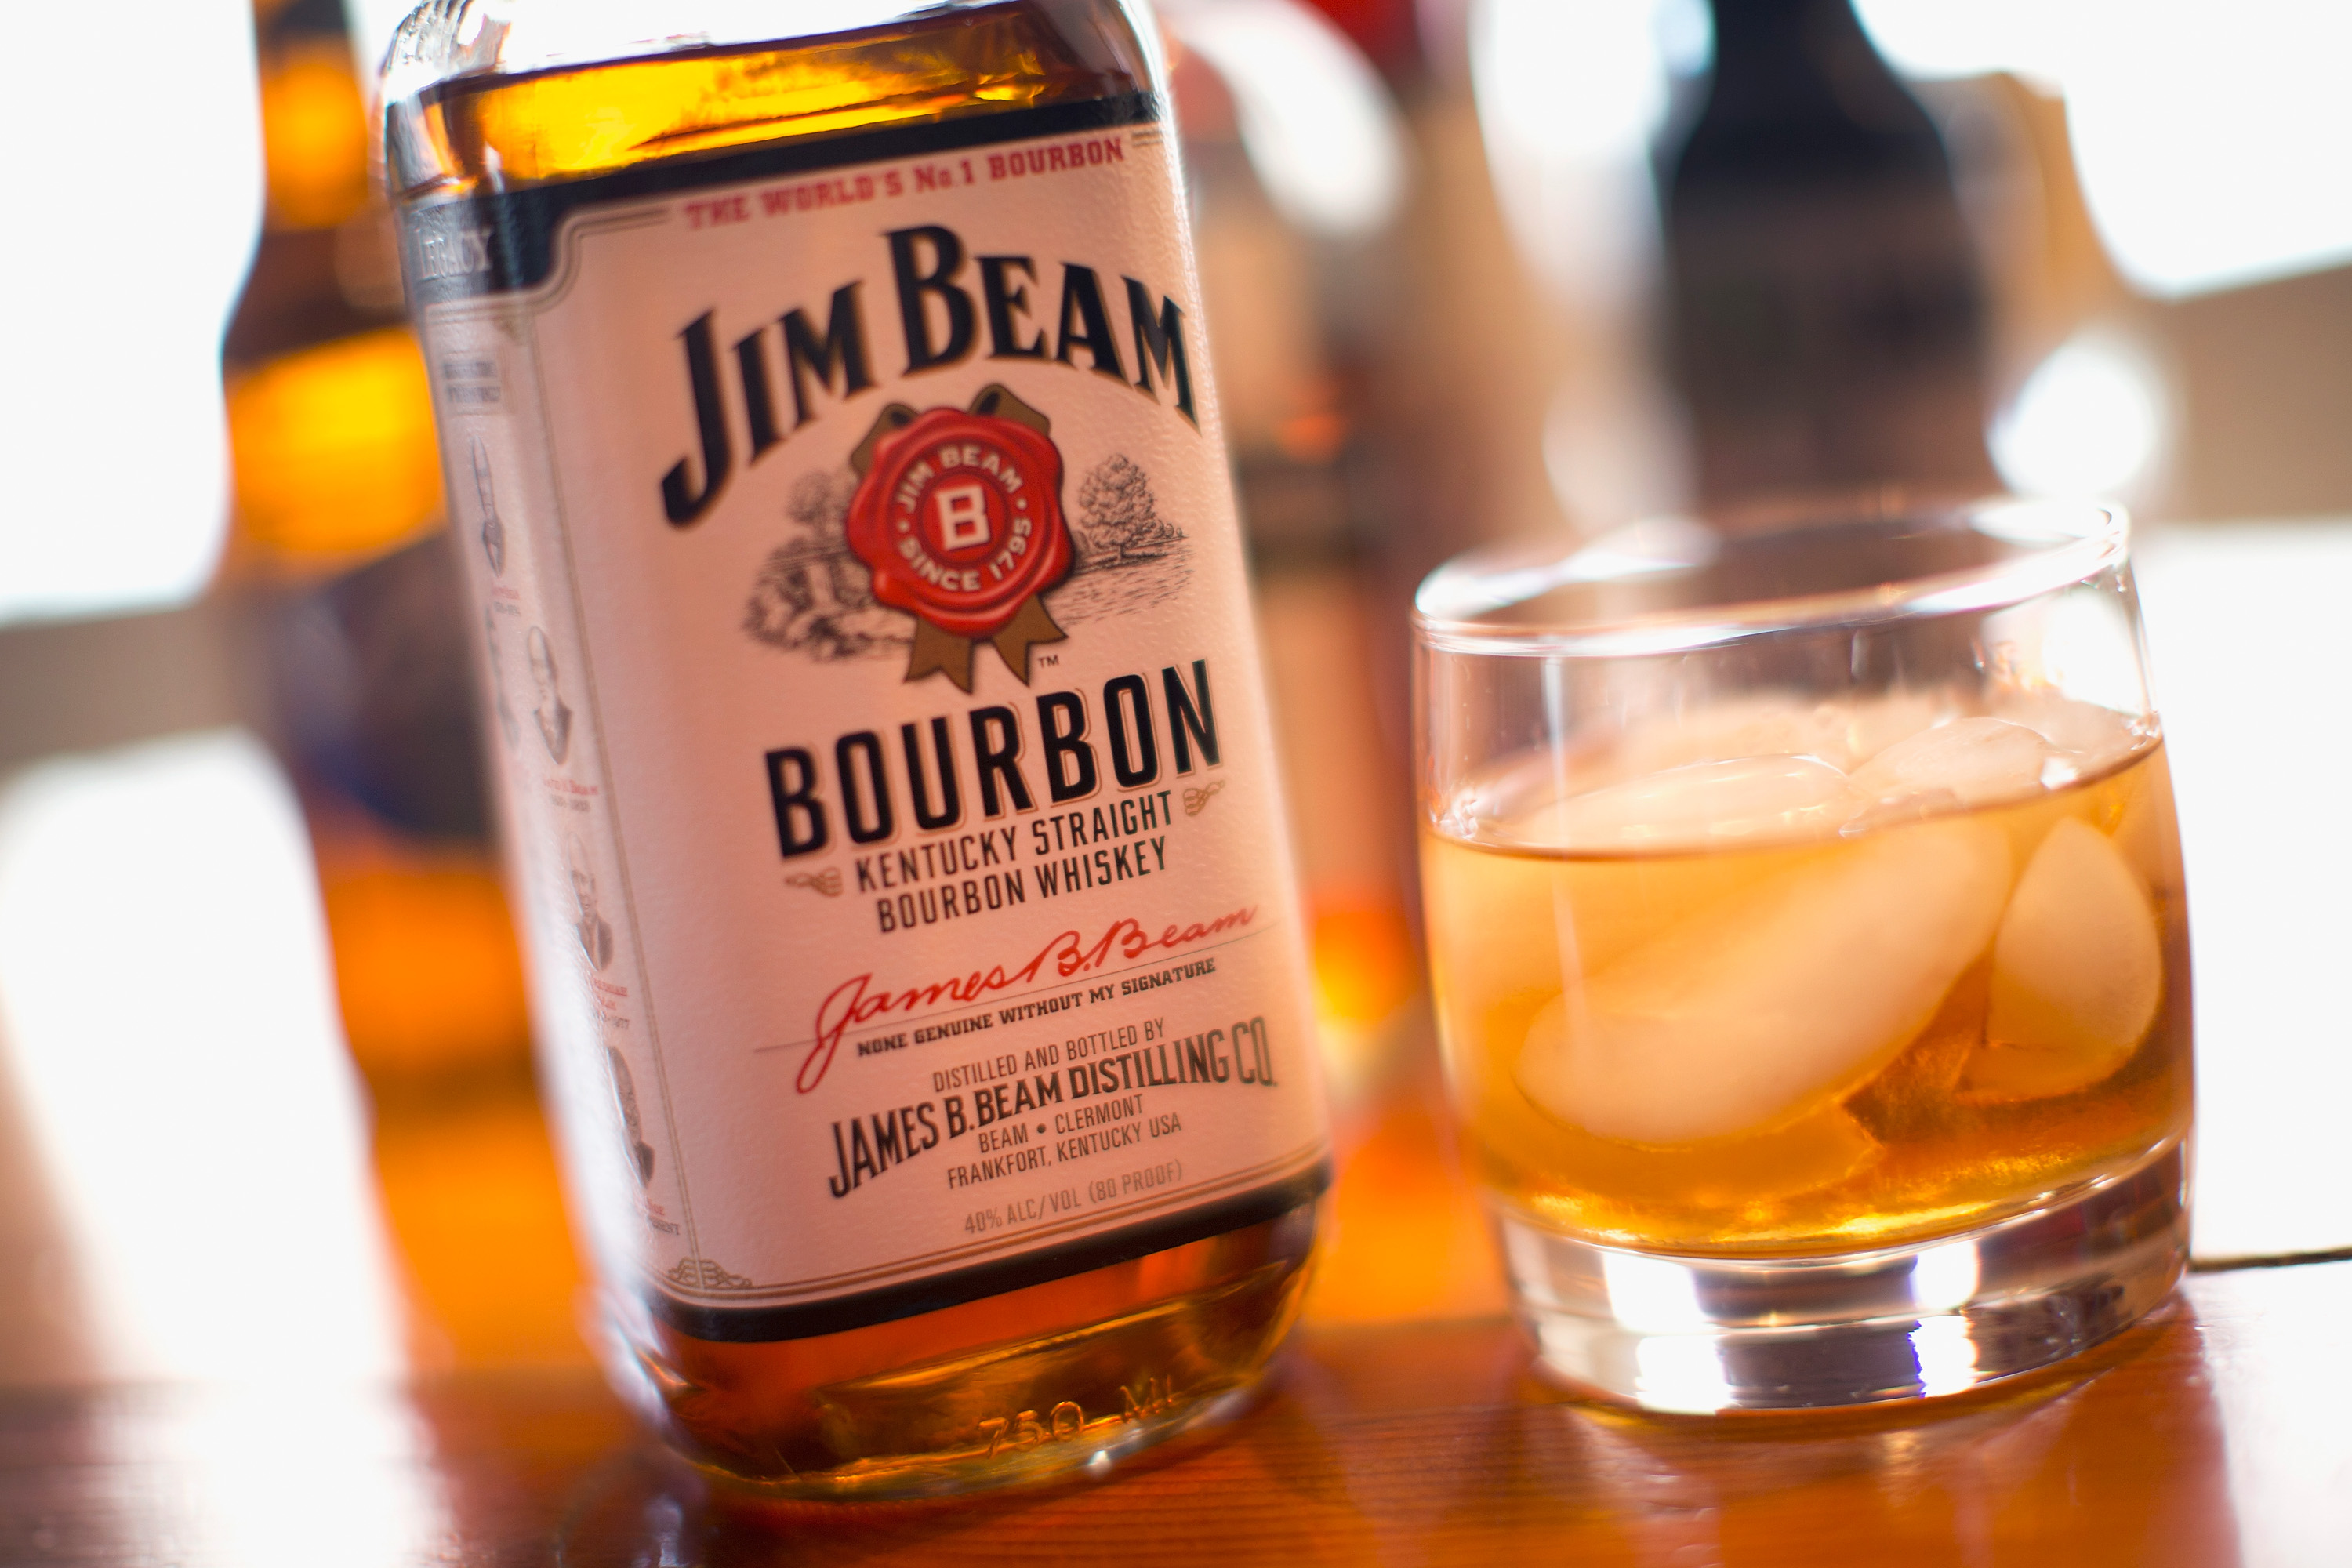 Jim Beam bourbon is shown on Feb. 3, 2015 in Chicago, Illinois.